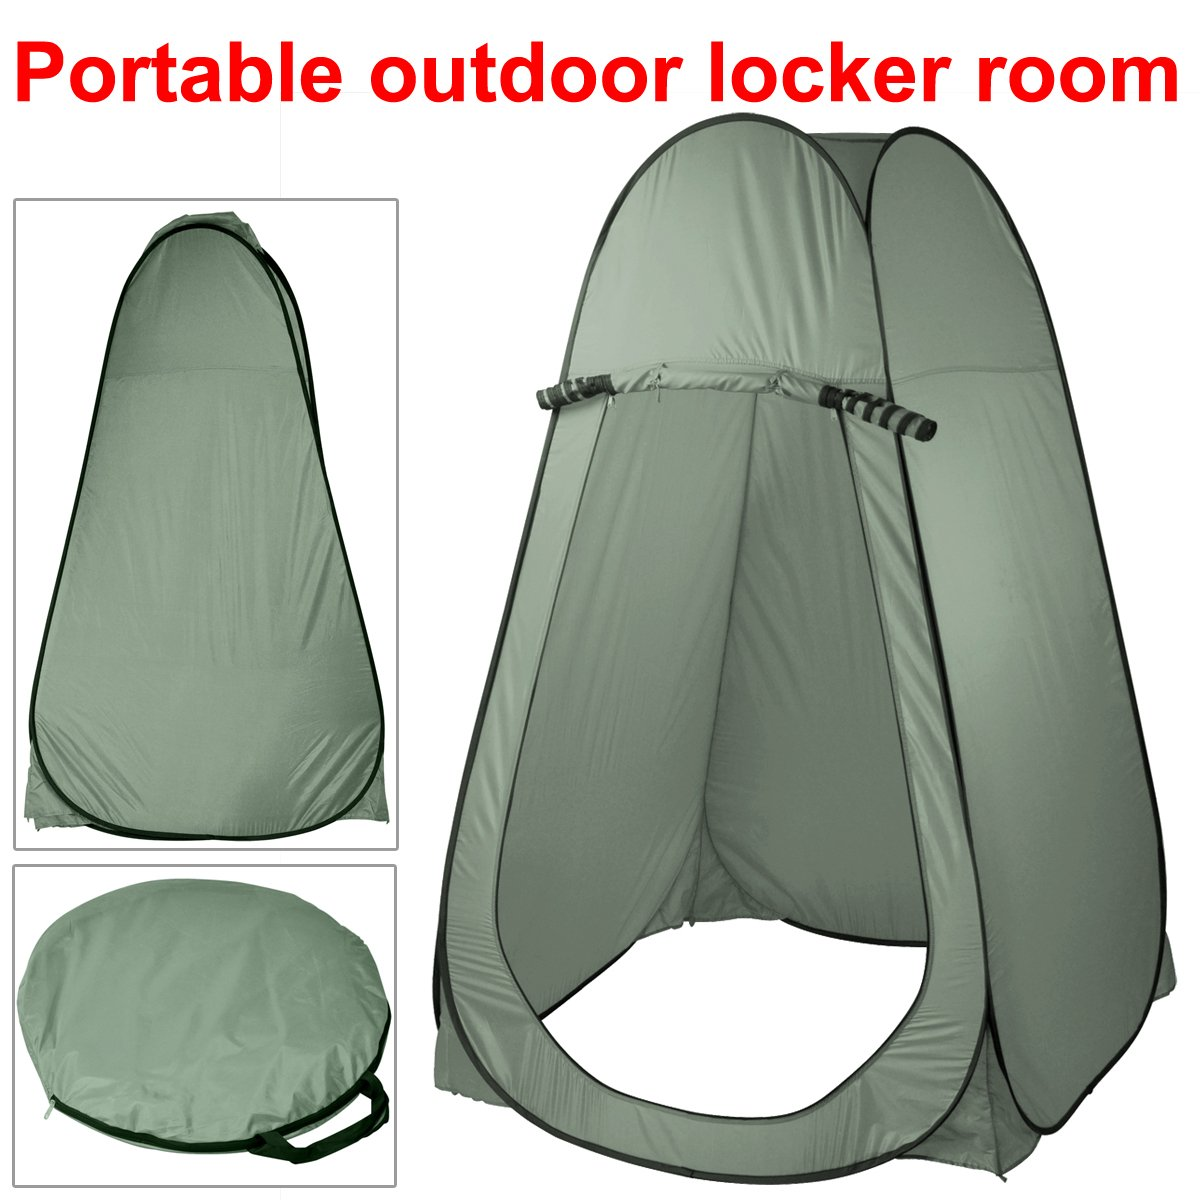 Beyondfashion Pop Up Toilet Tent For C&ing Shower Changing Room Caravan Utillity Accessories With Bag Amazon.co.uk Sports u0026 Outdoors  sc 1 st  Amazon UK & Beyondfashion Pop Up Toilet Tent For Camping Shower Changing Room ...